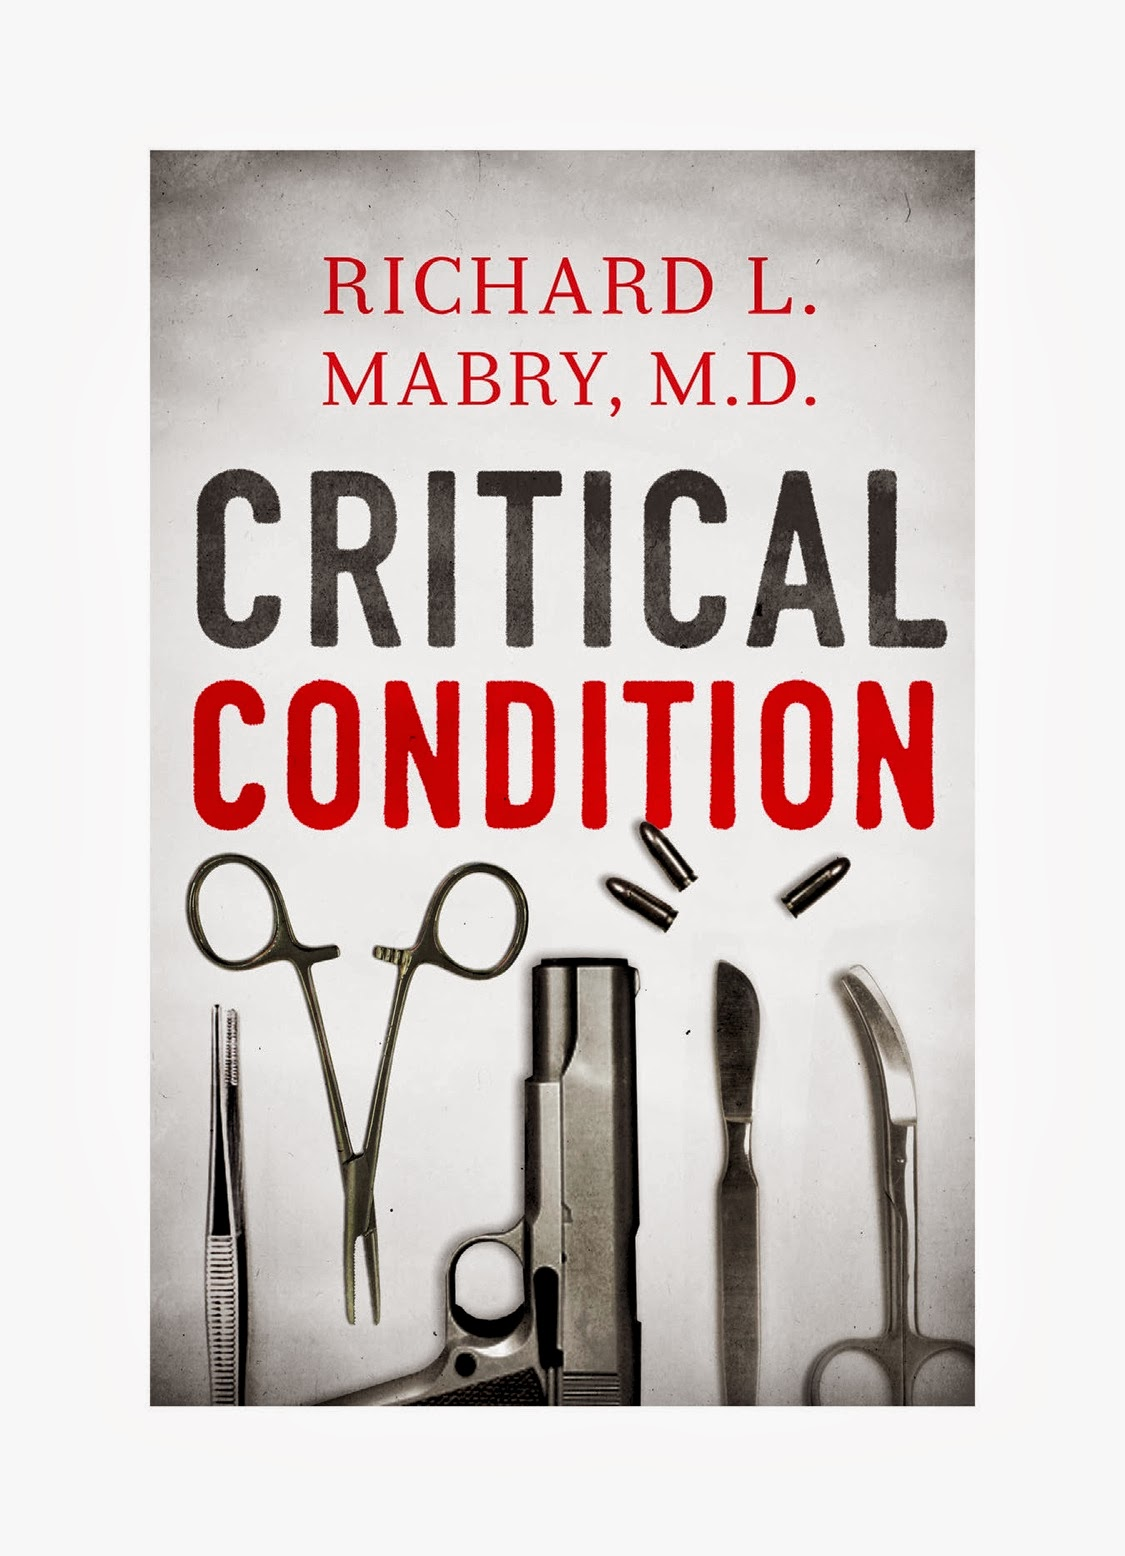 Pre-Order CRITICAL CONDITION